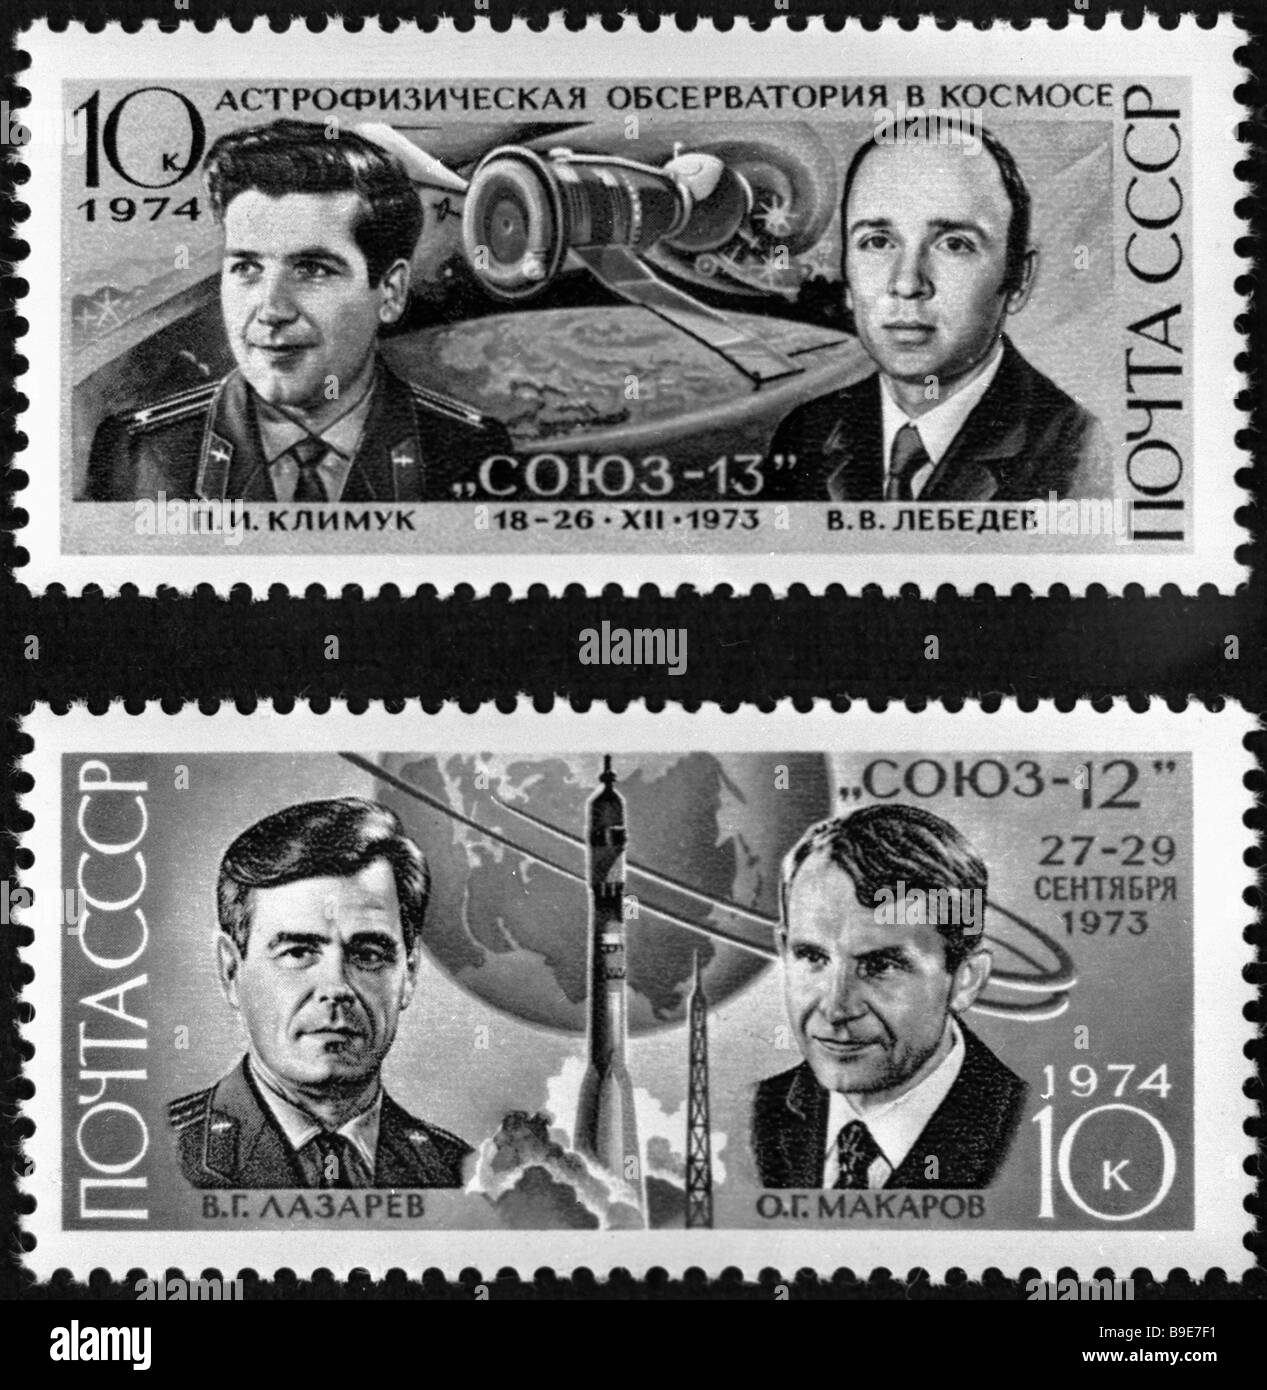 These postal stamps were issued in honor of Soyuz 12 and Soyuz 13 spacecraft flights - Stock Image